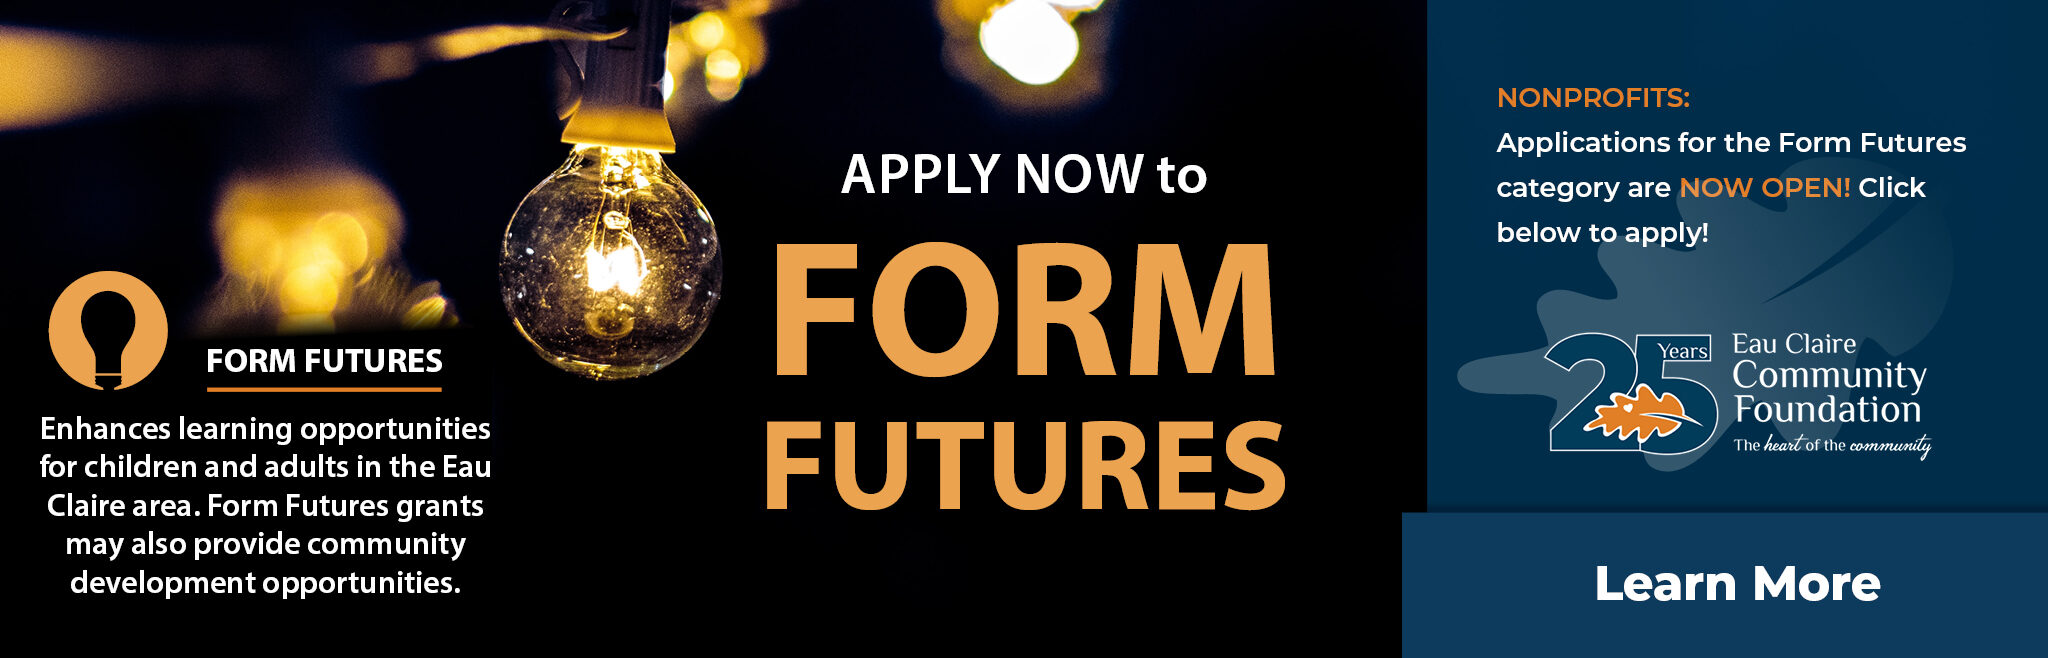 Apply now to Form Futures